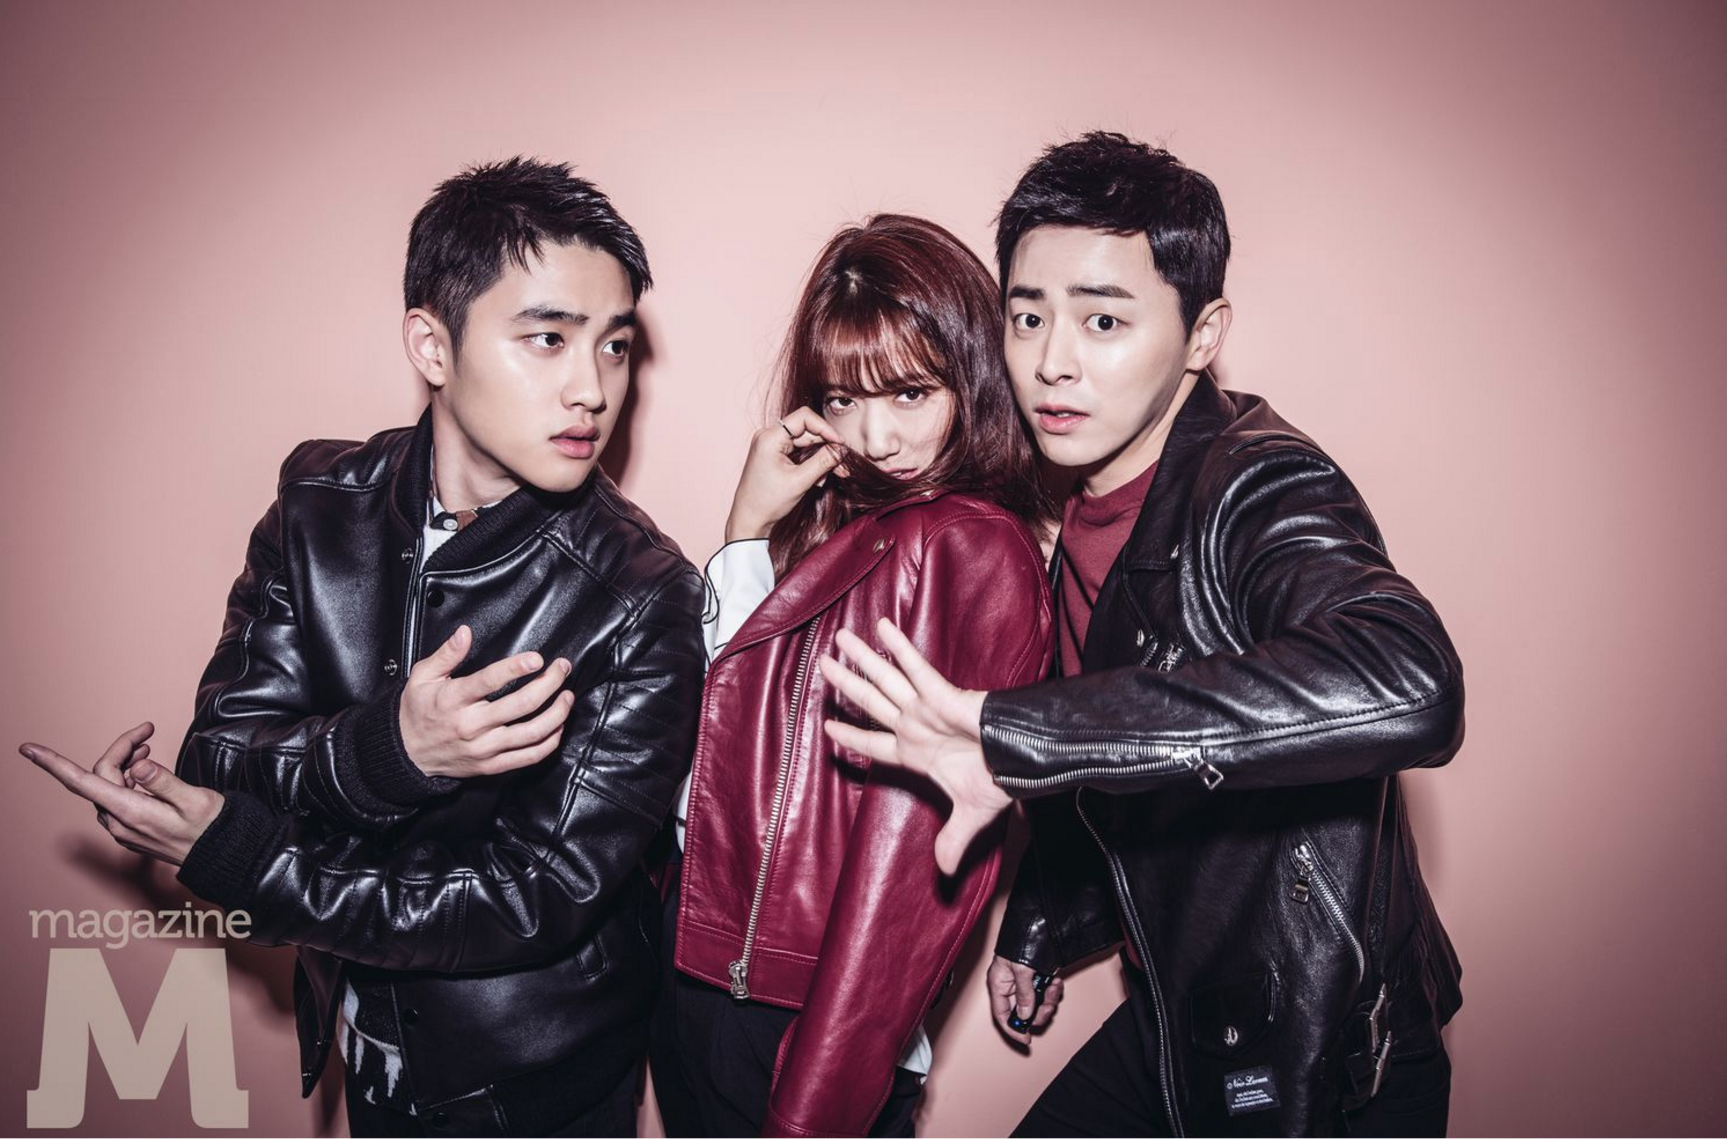 Jo Jung Suk, Park Shin Hye, And D.O. Compete To See Who Has The Funniest Poses In Magazine Shoot